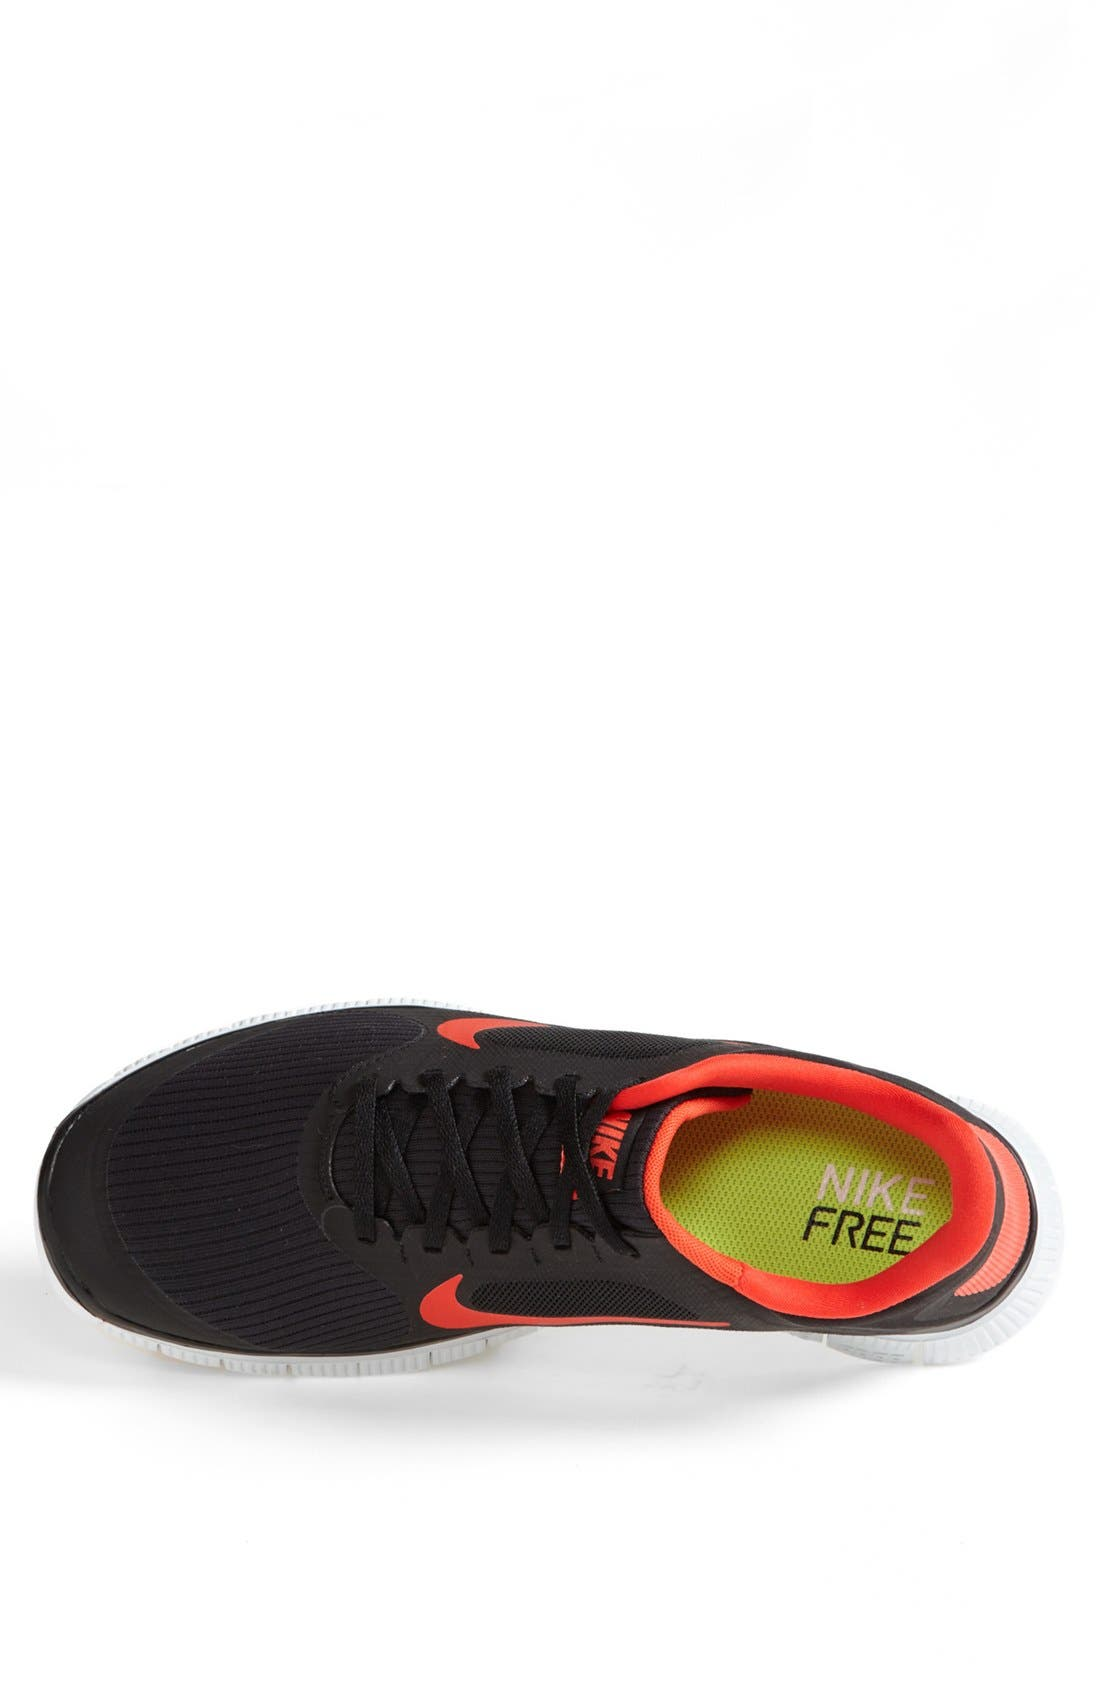 Alternate Image 3  - Nike 'Free 4.0 V3' Running Shoe (Men)